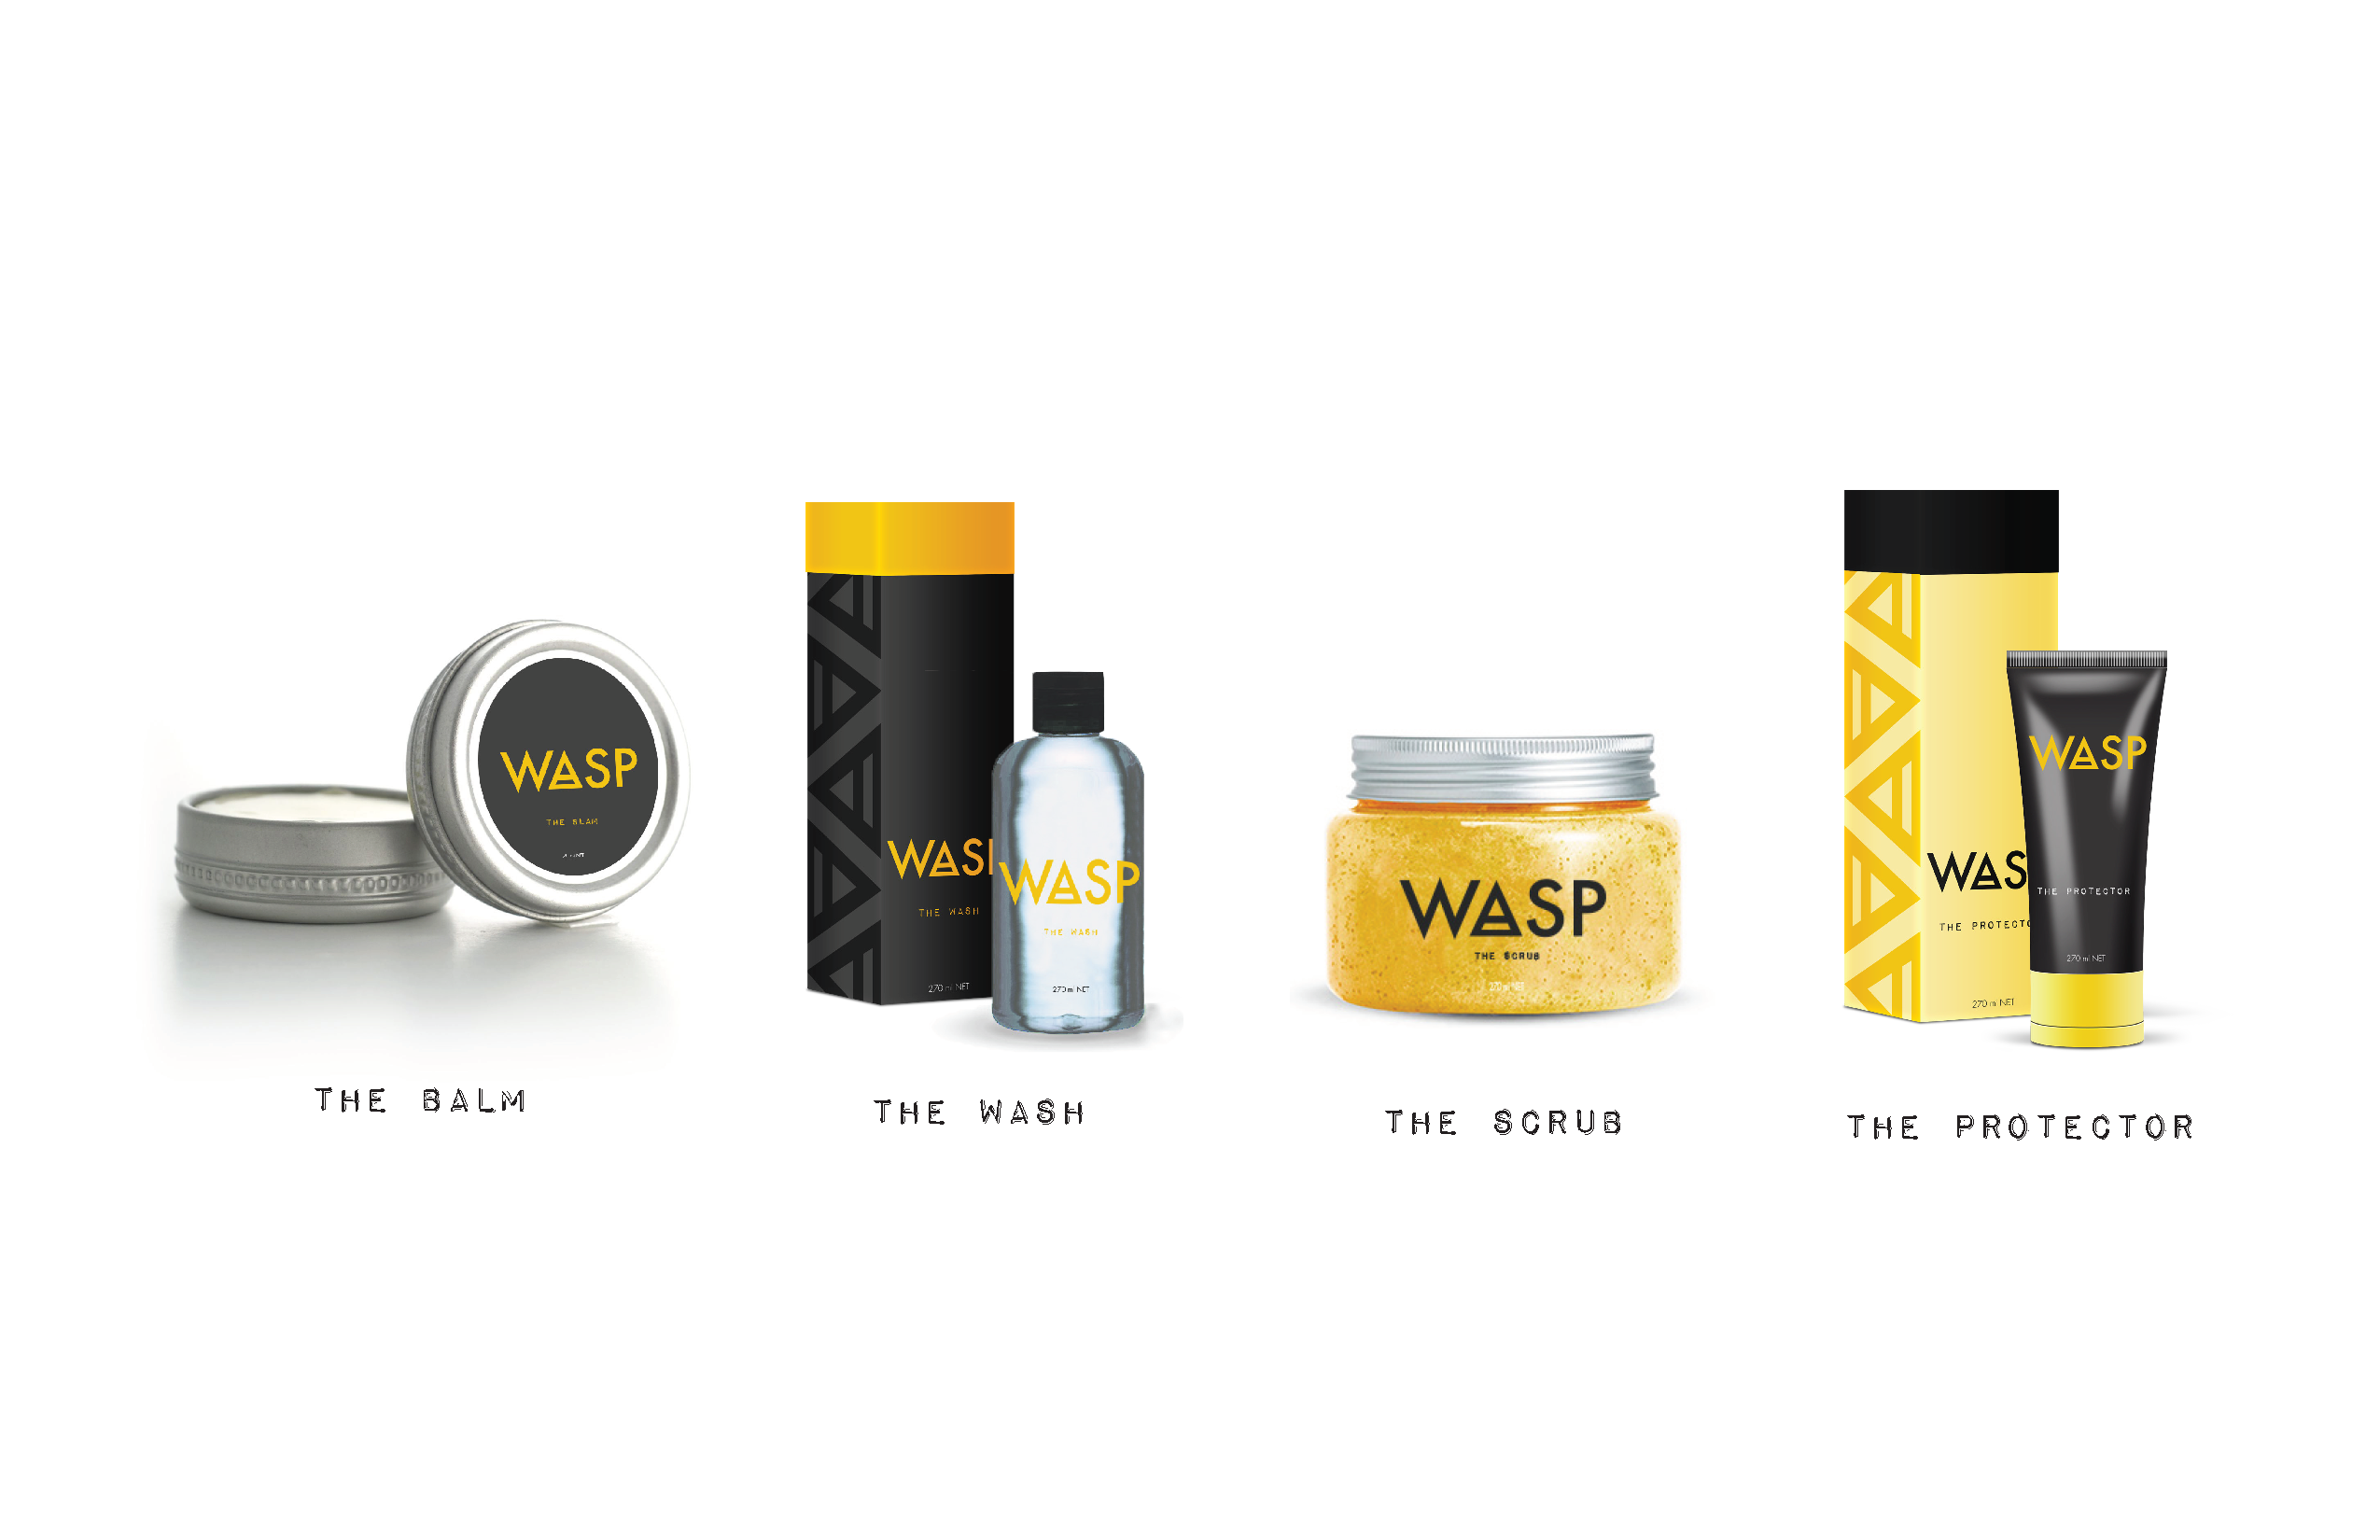 WASP Packaging